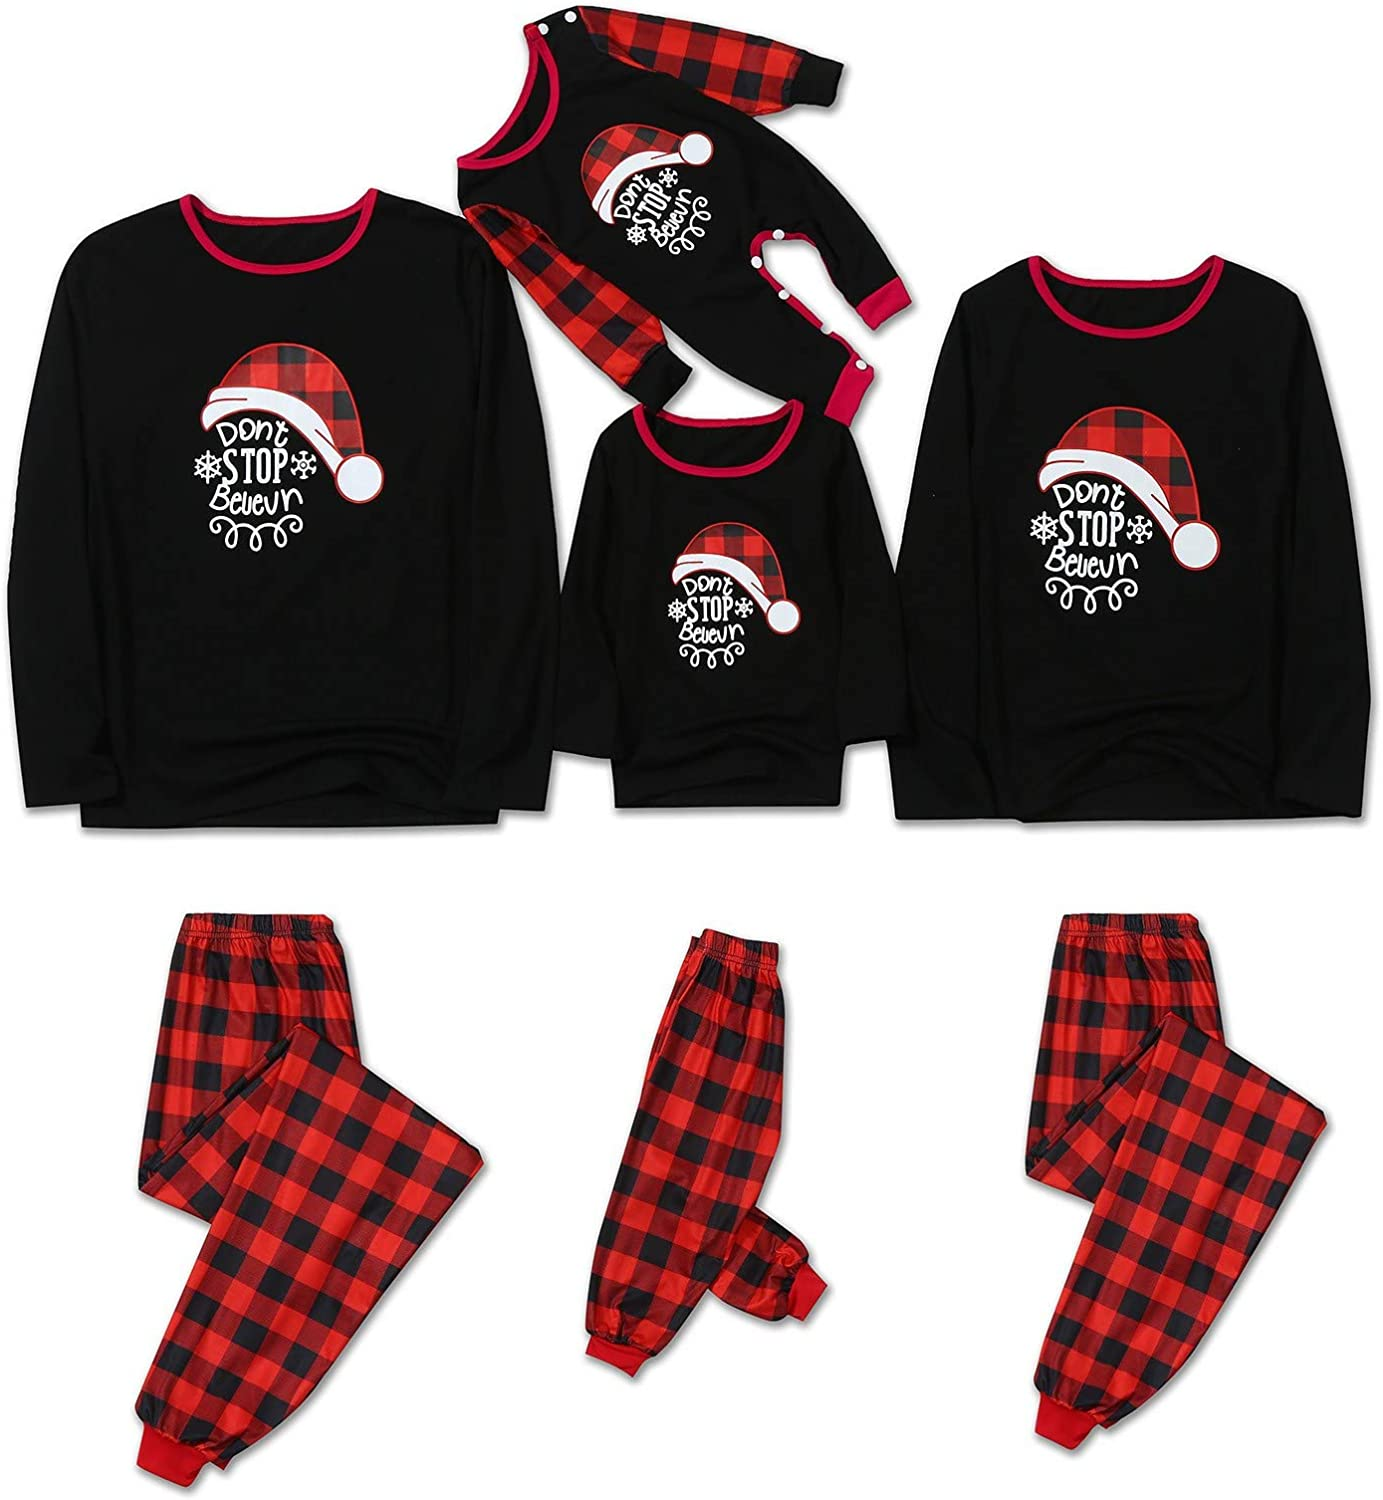 Christmas Pajamas for Family Classic Black Red Plaid Printed Sleepwear Outfits,Leisure Nightgown Sets for Mom Dad and Kids